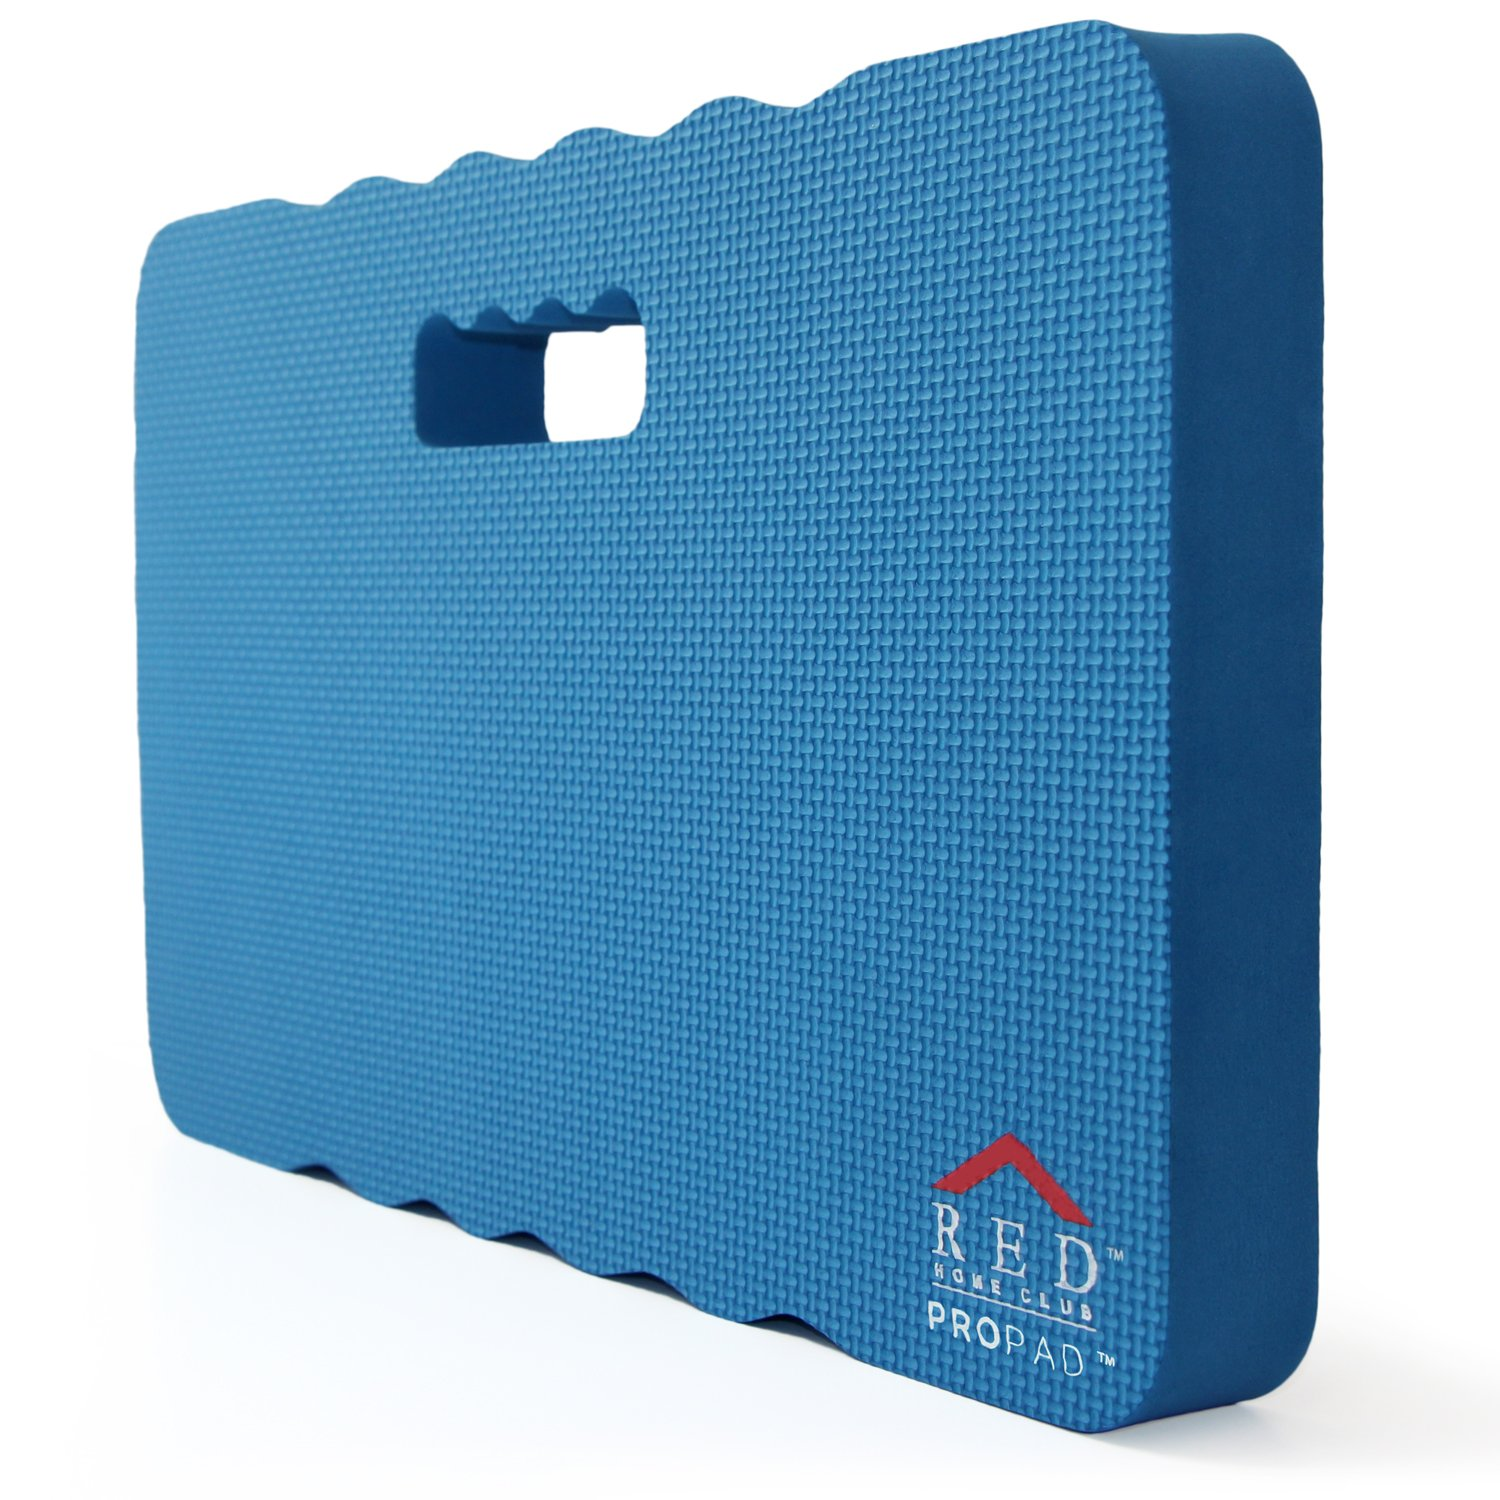 RED Home Club Thick Kneeling Pad - Garden Kneeler for Gardening, Bath Kneeler for Baby Bath, Kneeling Mat for Exercise & Yoga - Extra Large (XL) 18x11, THICKEST 1-½'', Blue